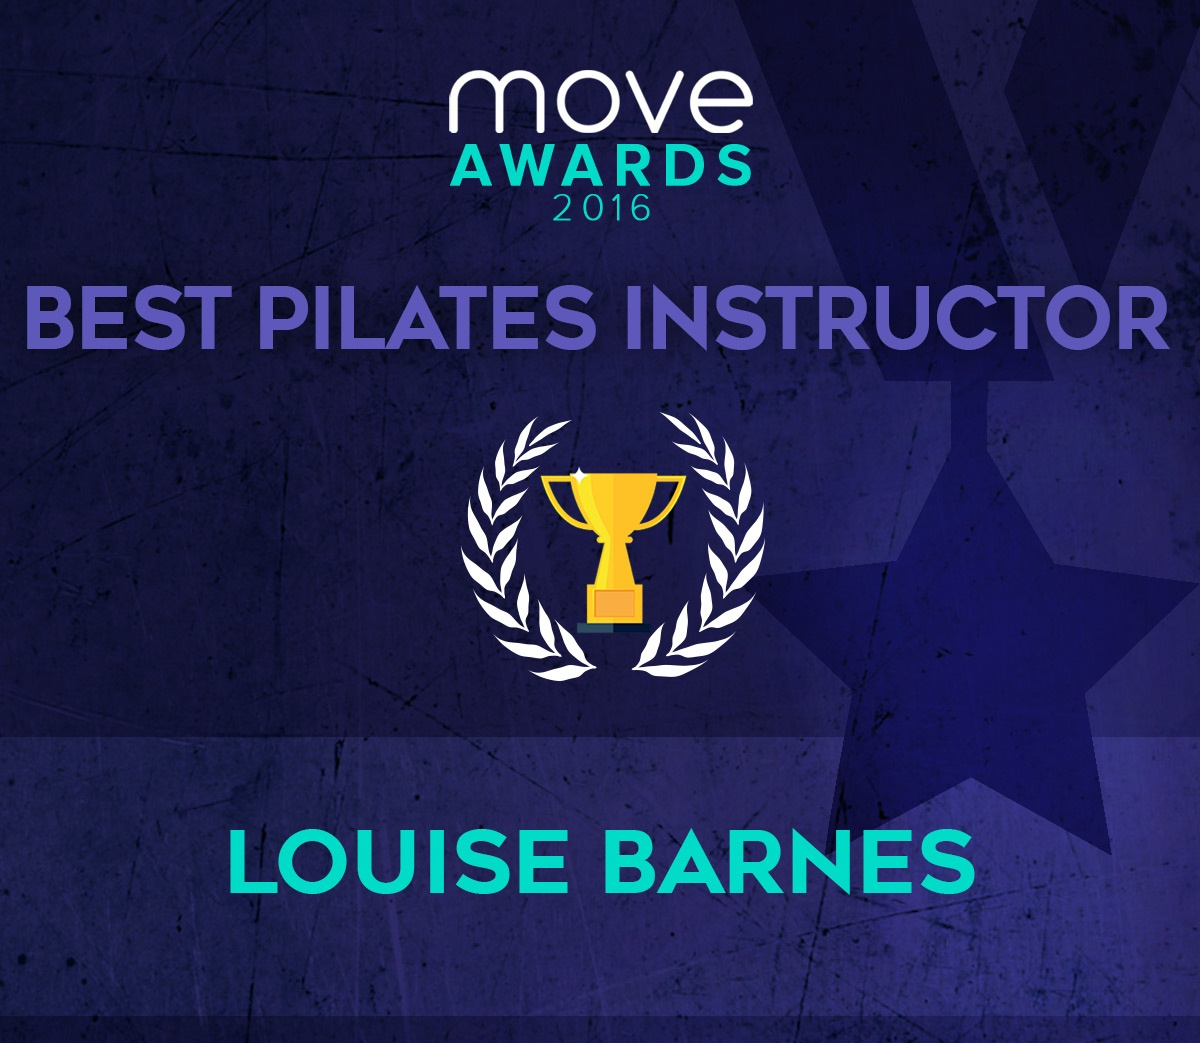 Best-Pilates-Instructor-Plymouth.jpg